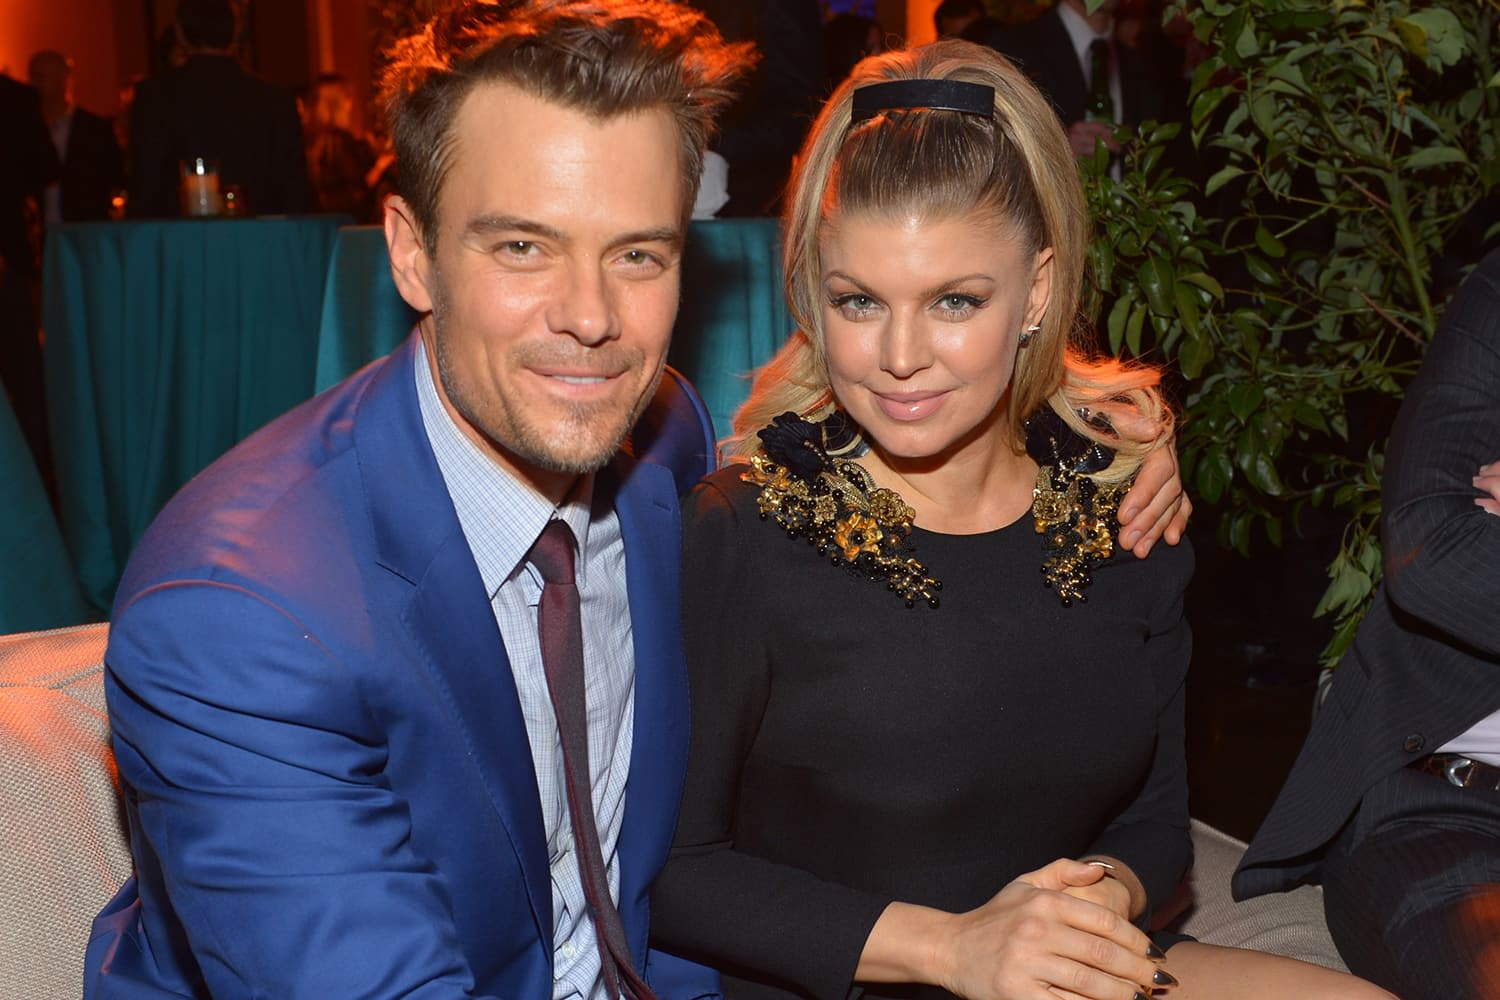 Actor Josh Duhamel And Wife Fergie Get Divorced After 8 Years Of Marriage